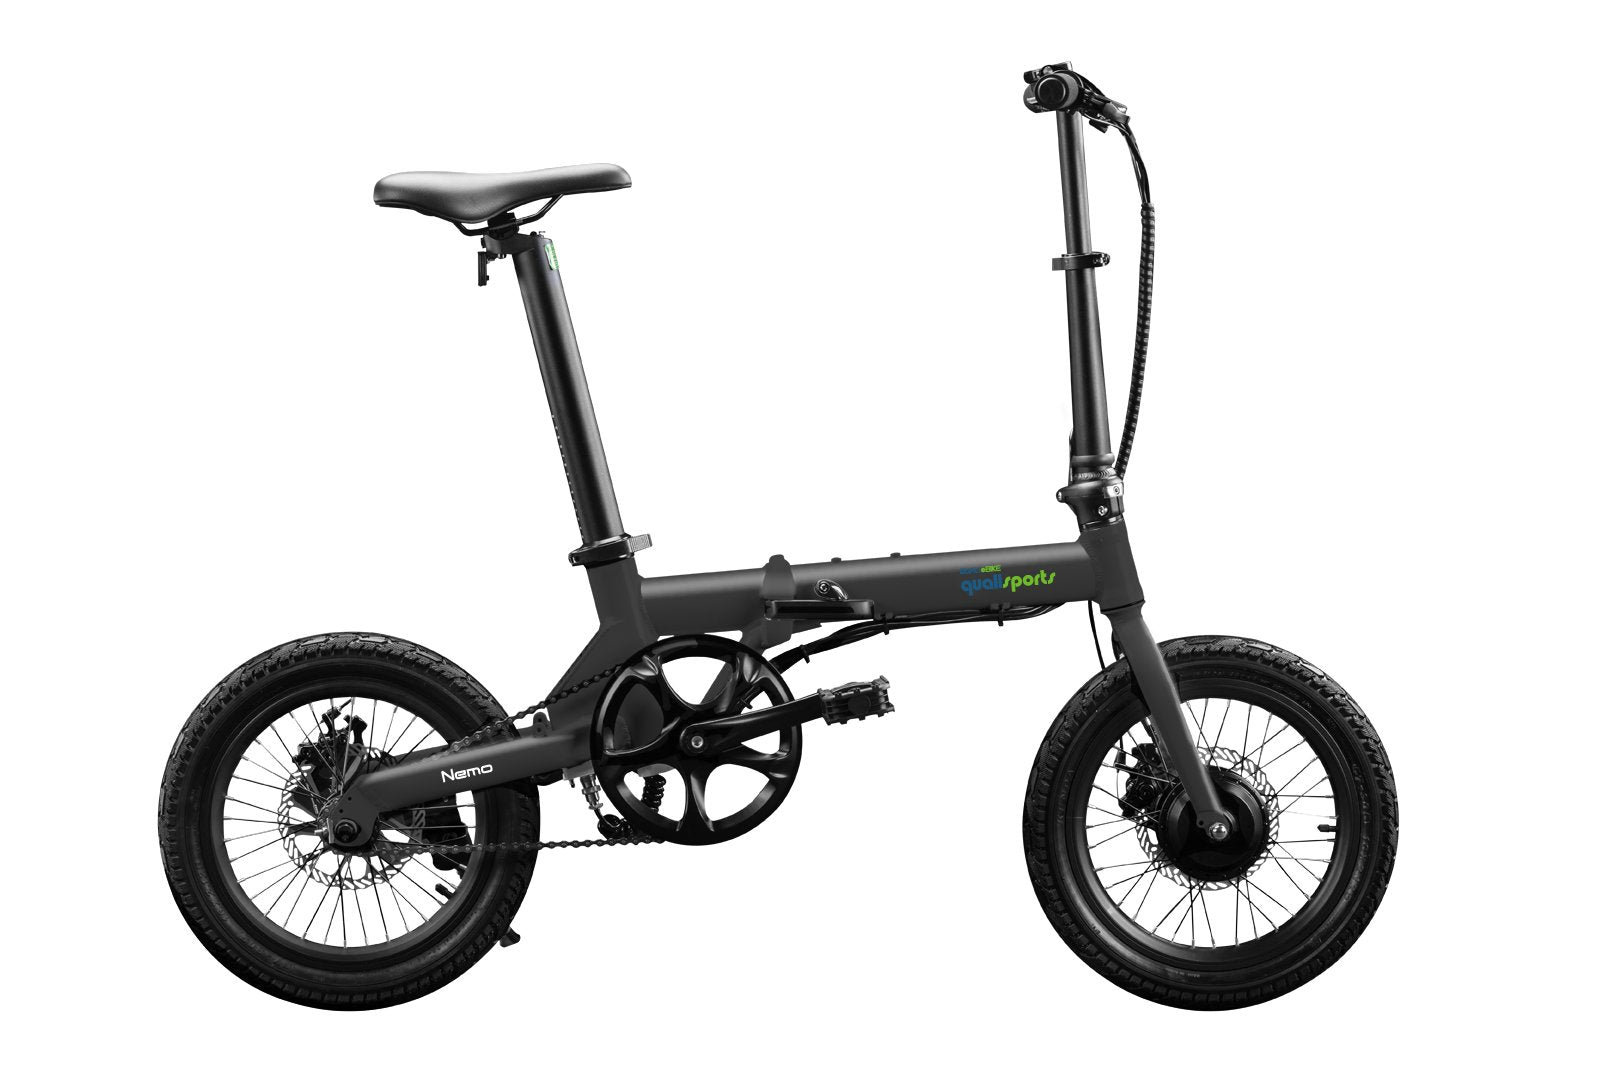 16inch-Black-Folding-Electric-Bike-On-Sale-By-Qualisports-Nemo